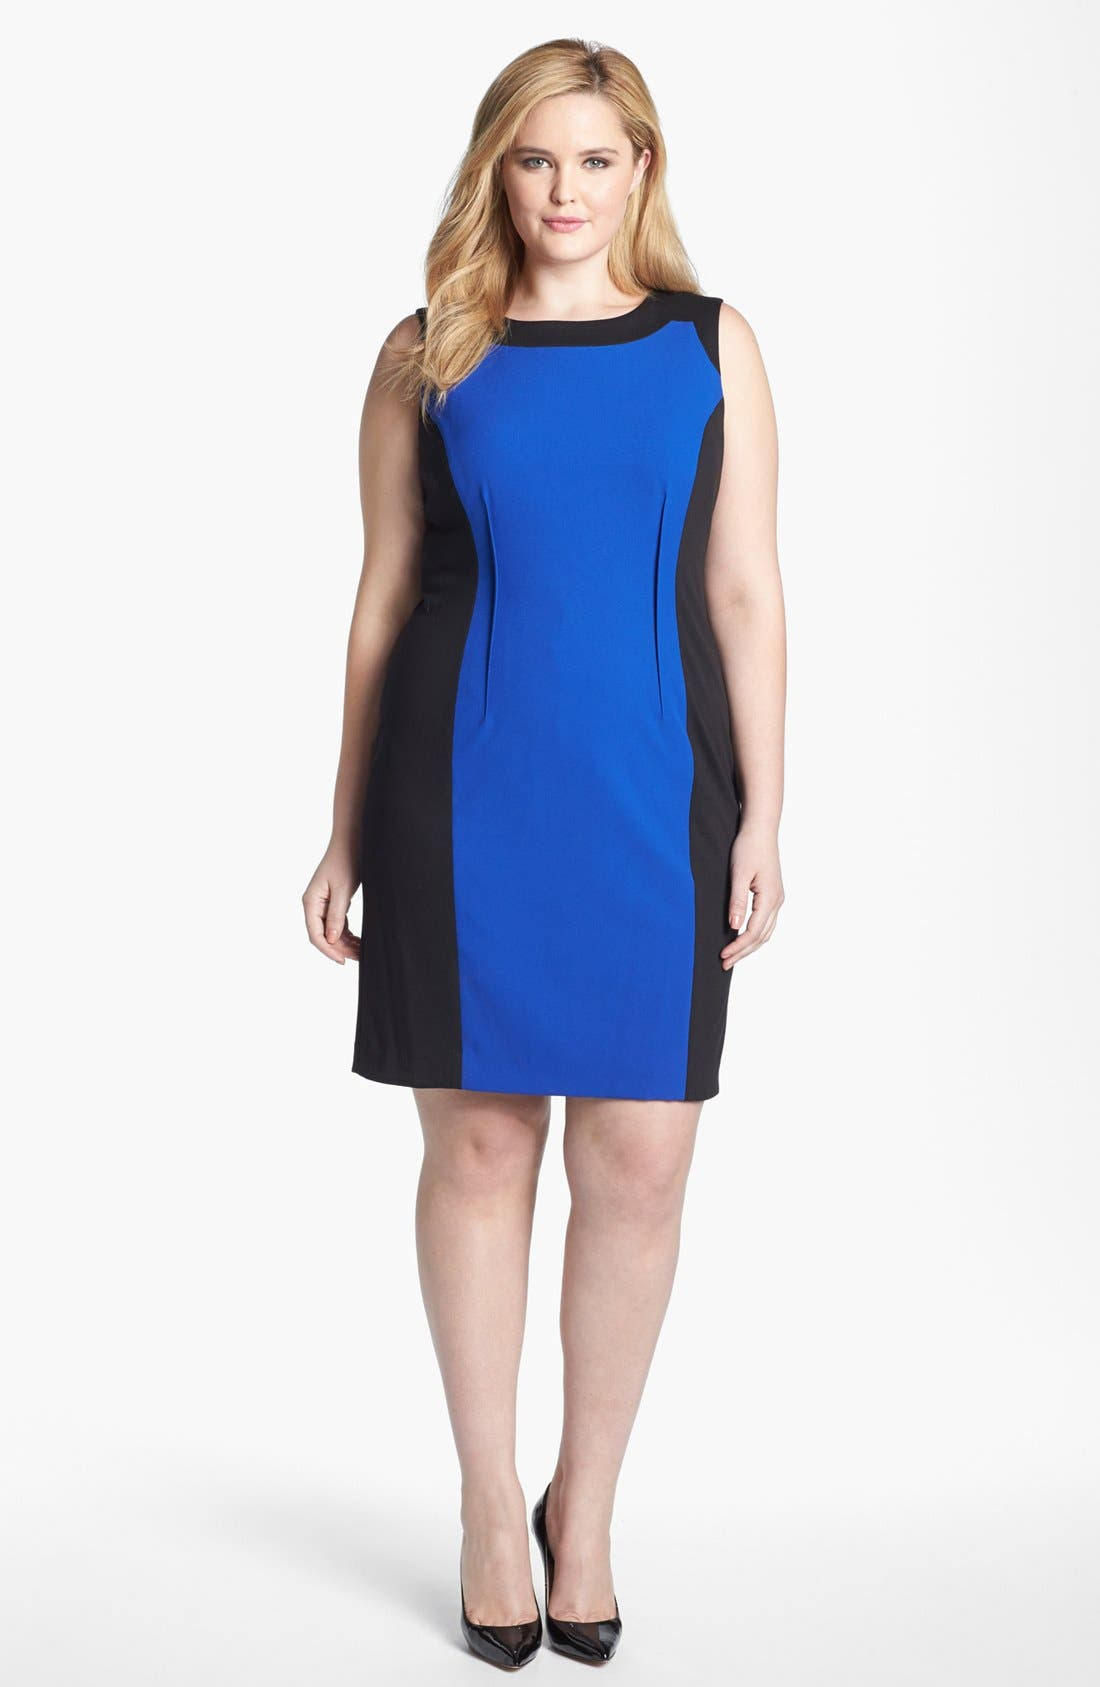 Alternate Image 1 Selected - Calvin Klein Sleeveless Colorblock Dress (Plus Size)